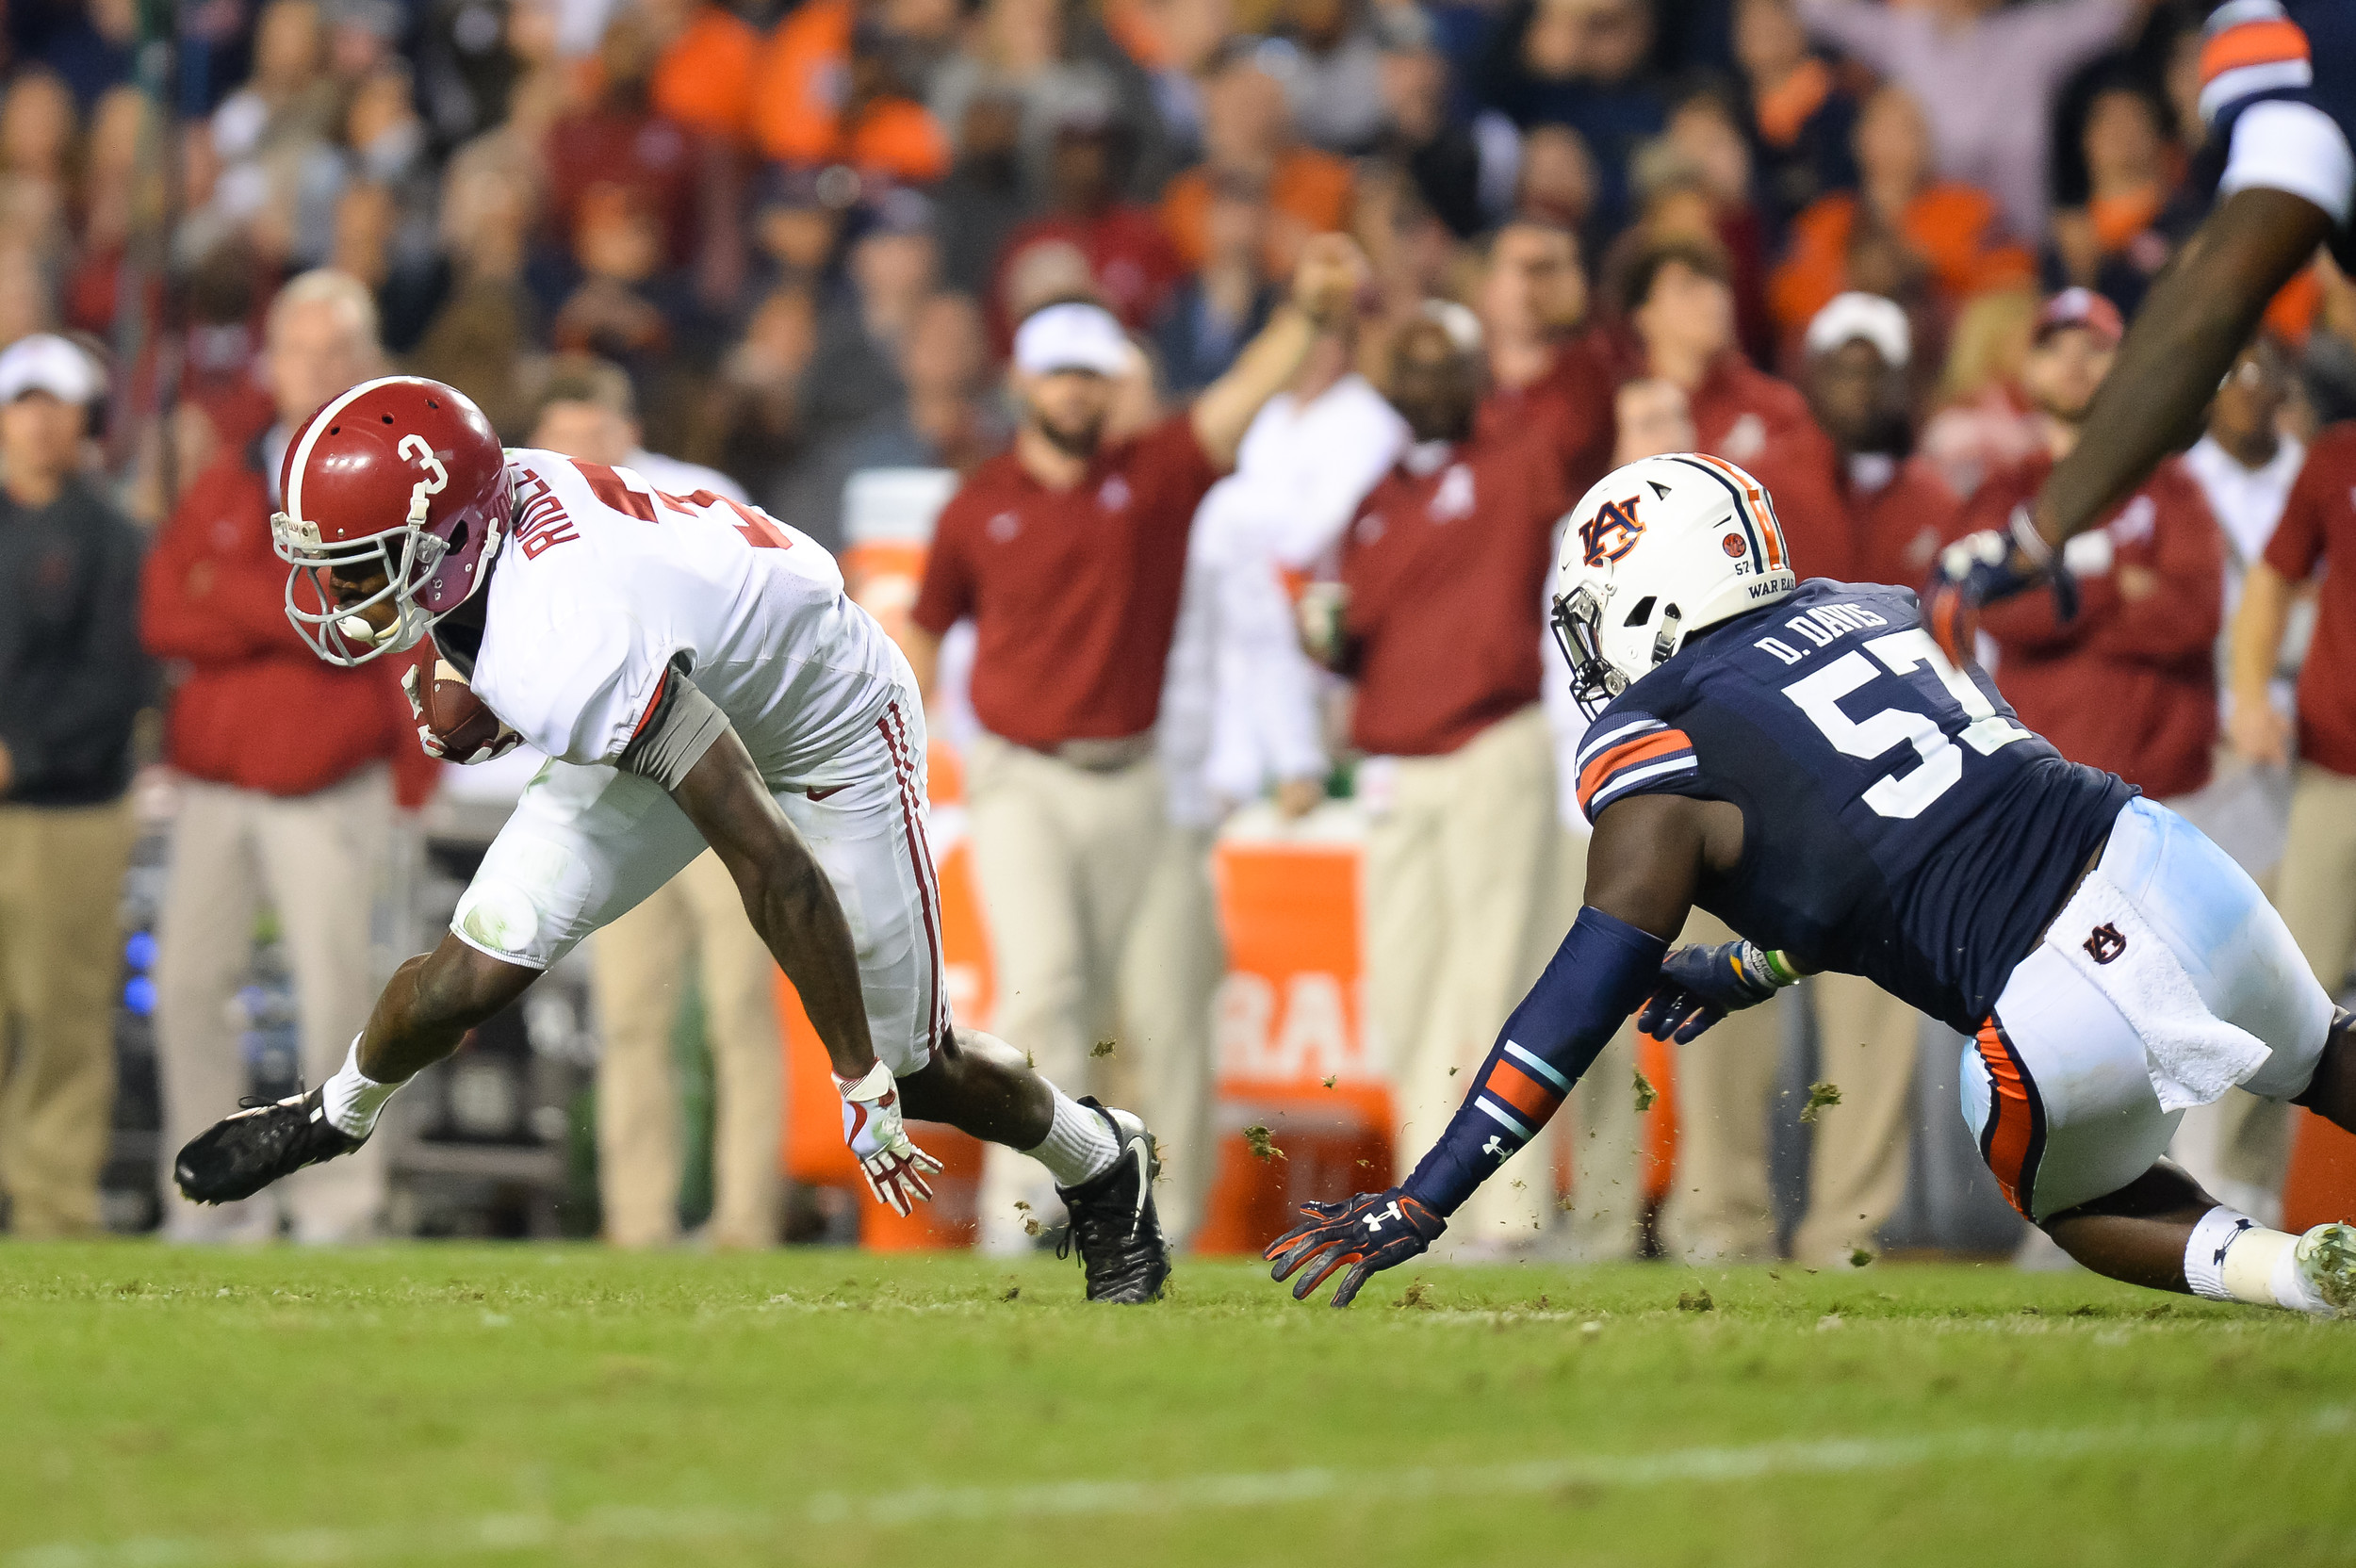 Alabama Crimson Tide wide receiver Calvin Ridley (3) runs around the tackle of Auburn Tigers linebacker Deshaun Davis (57) during the second half of Saturday's game, at Jordan-Hare Stadium.